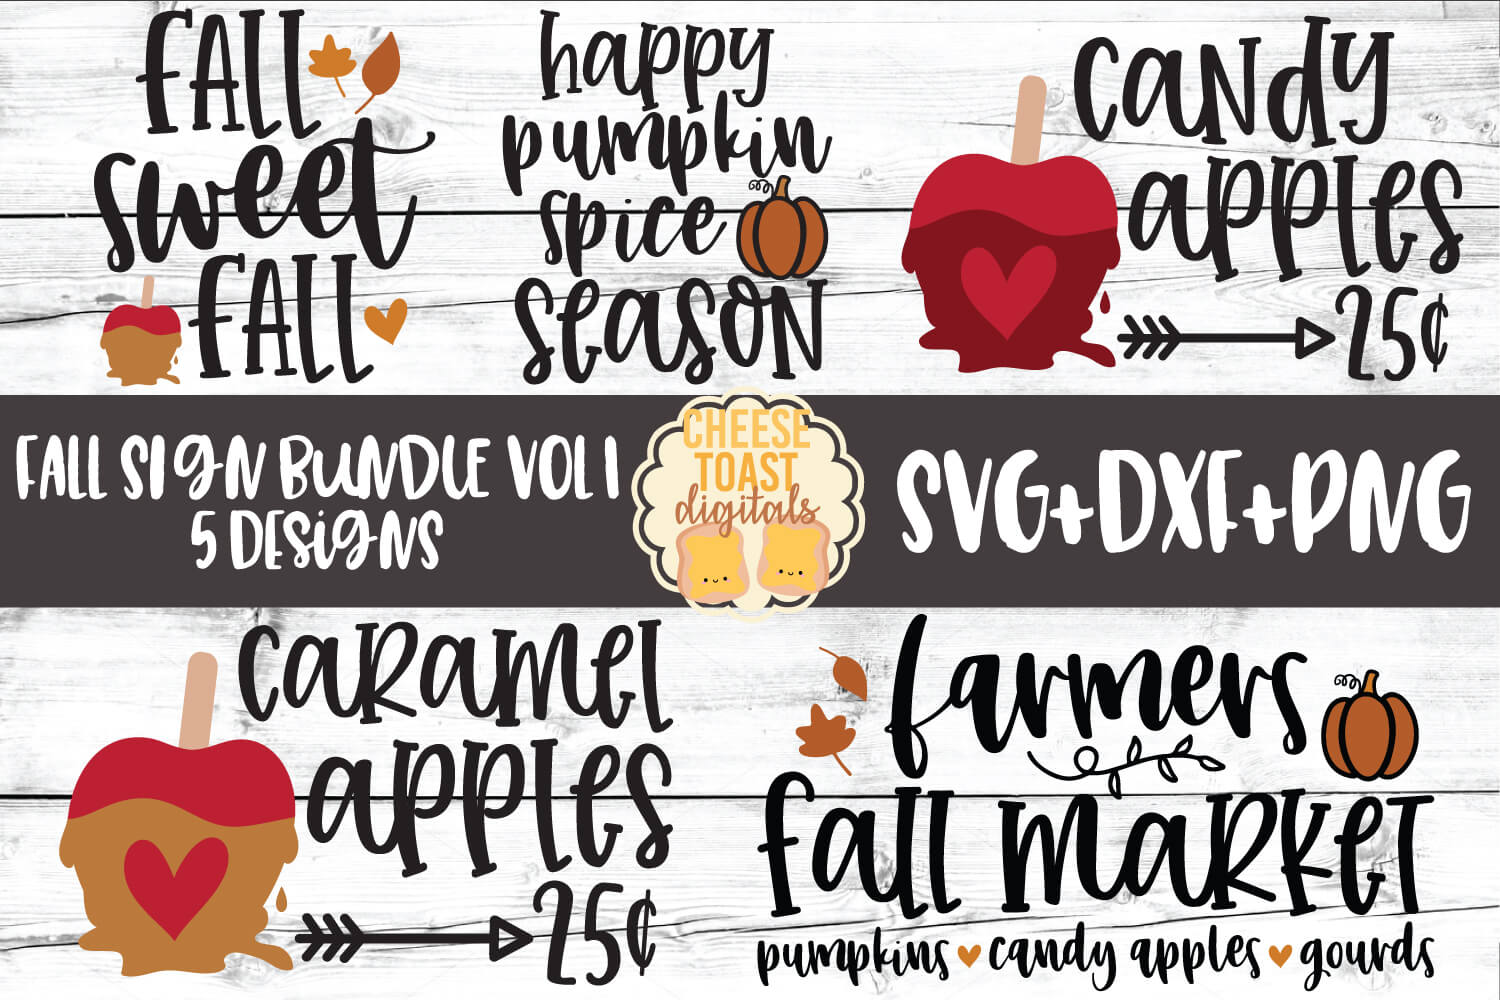 Fall Sign Bundle Vol 1 - Autumn SVG PNG DXF Cut Files example image 1